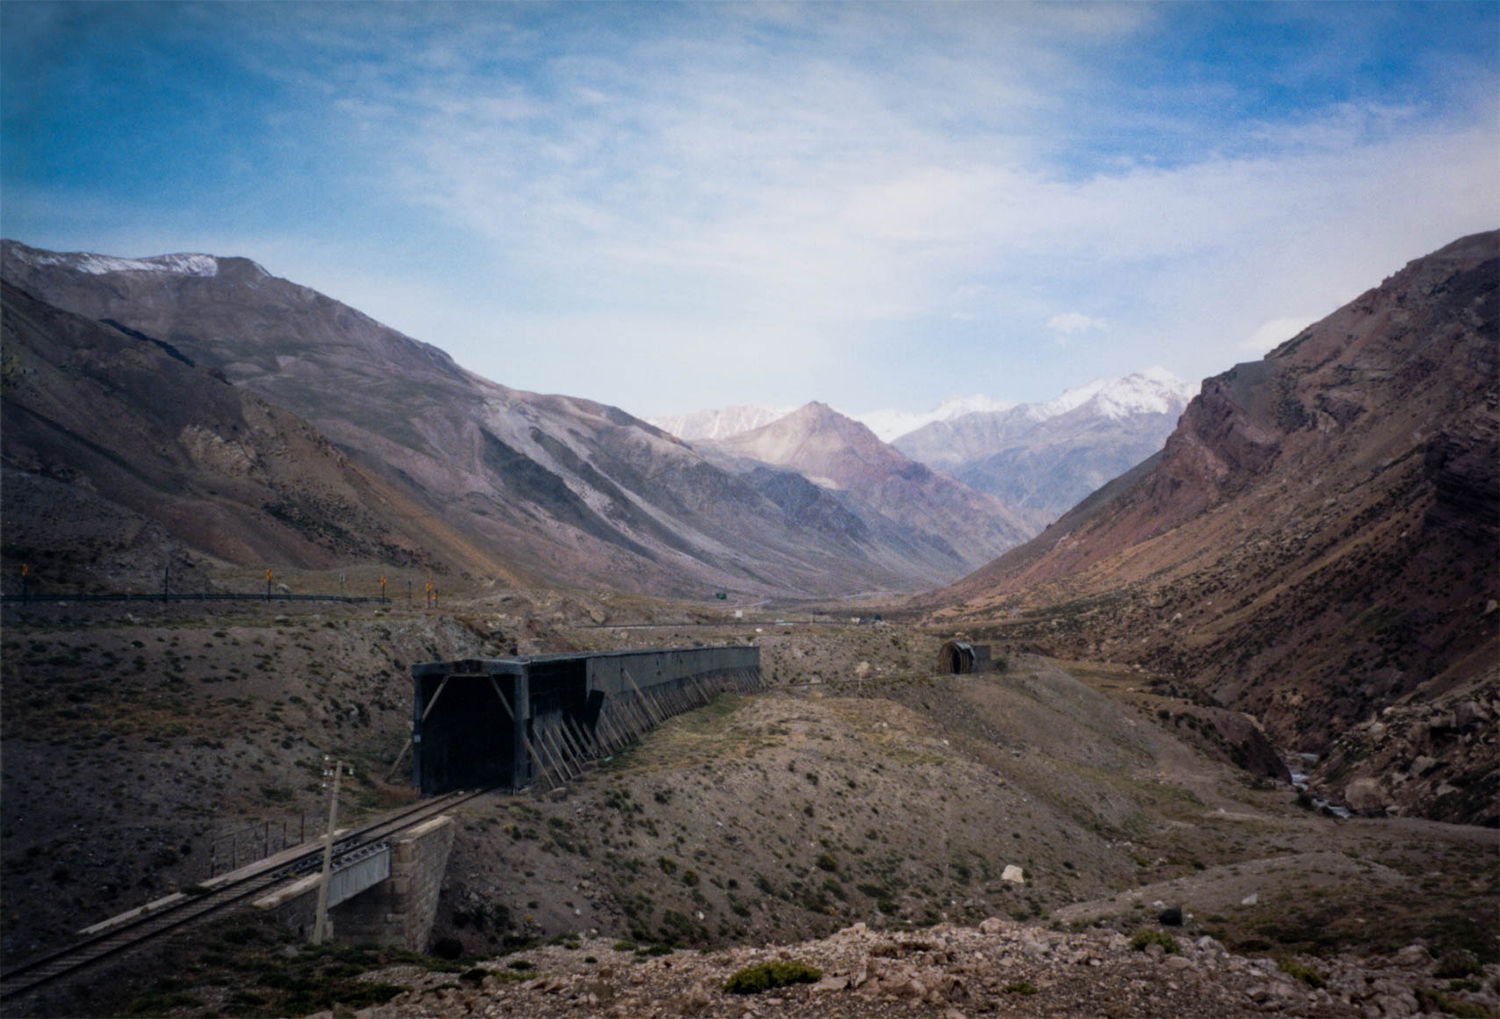 <p>A view of the Uspallata Pass, high in the Andes. <br /></p>